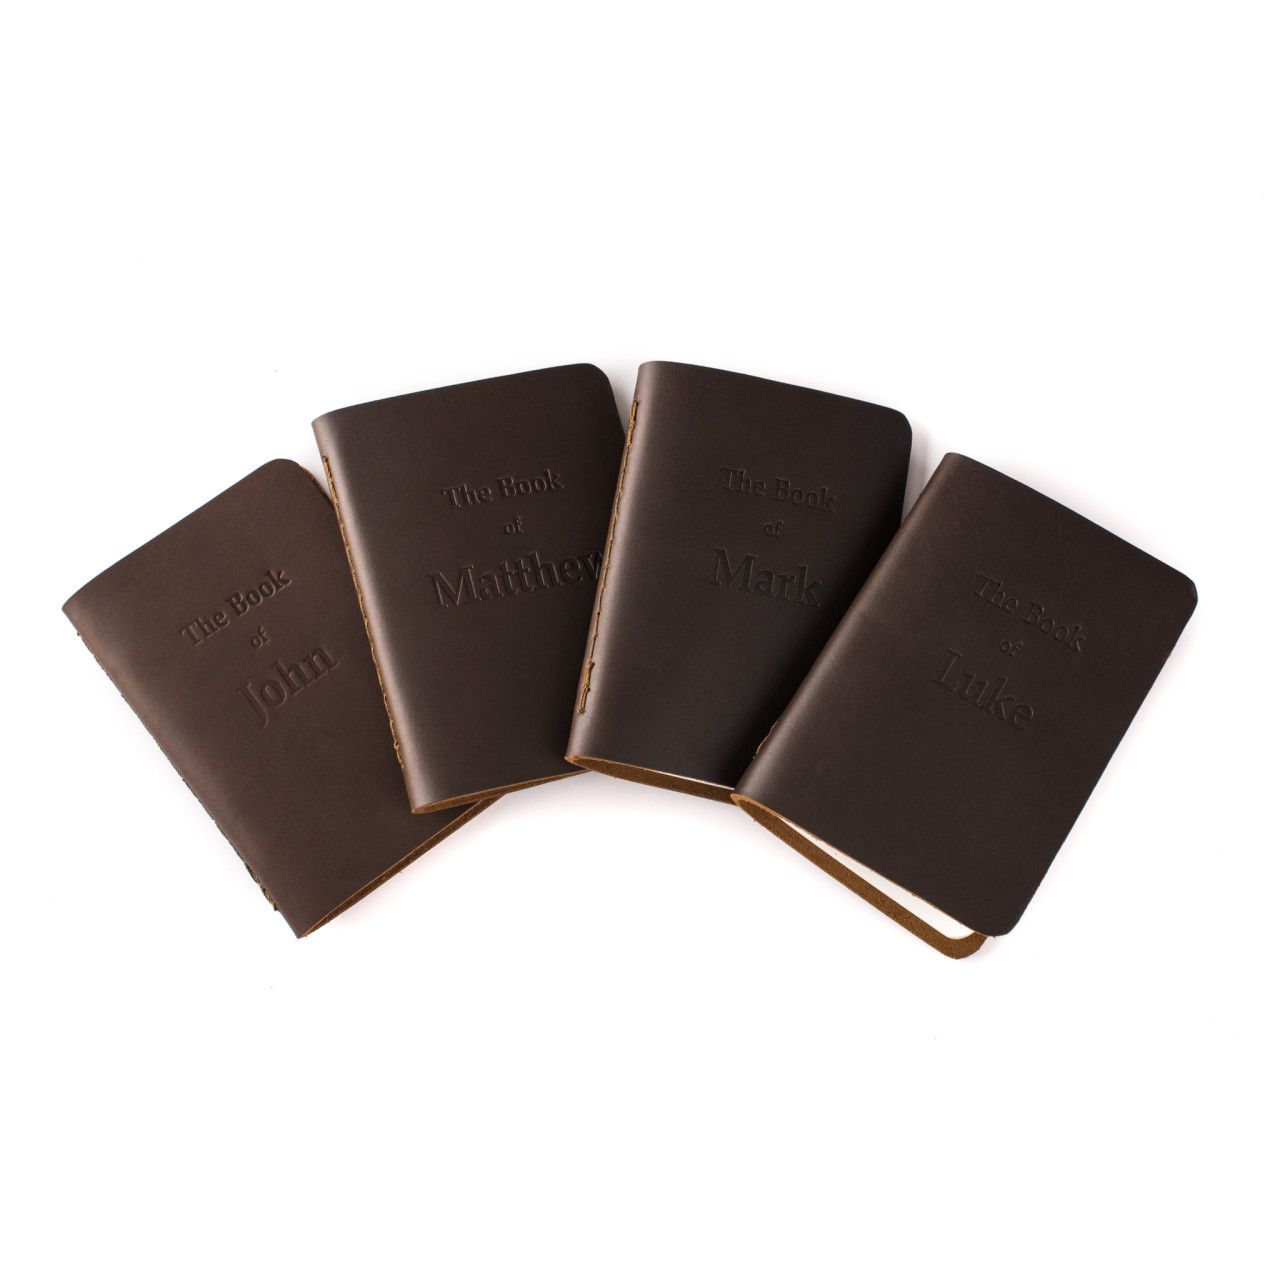 leather bound four gospels in dark coffee brown leather